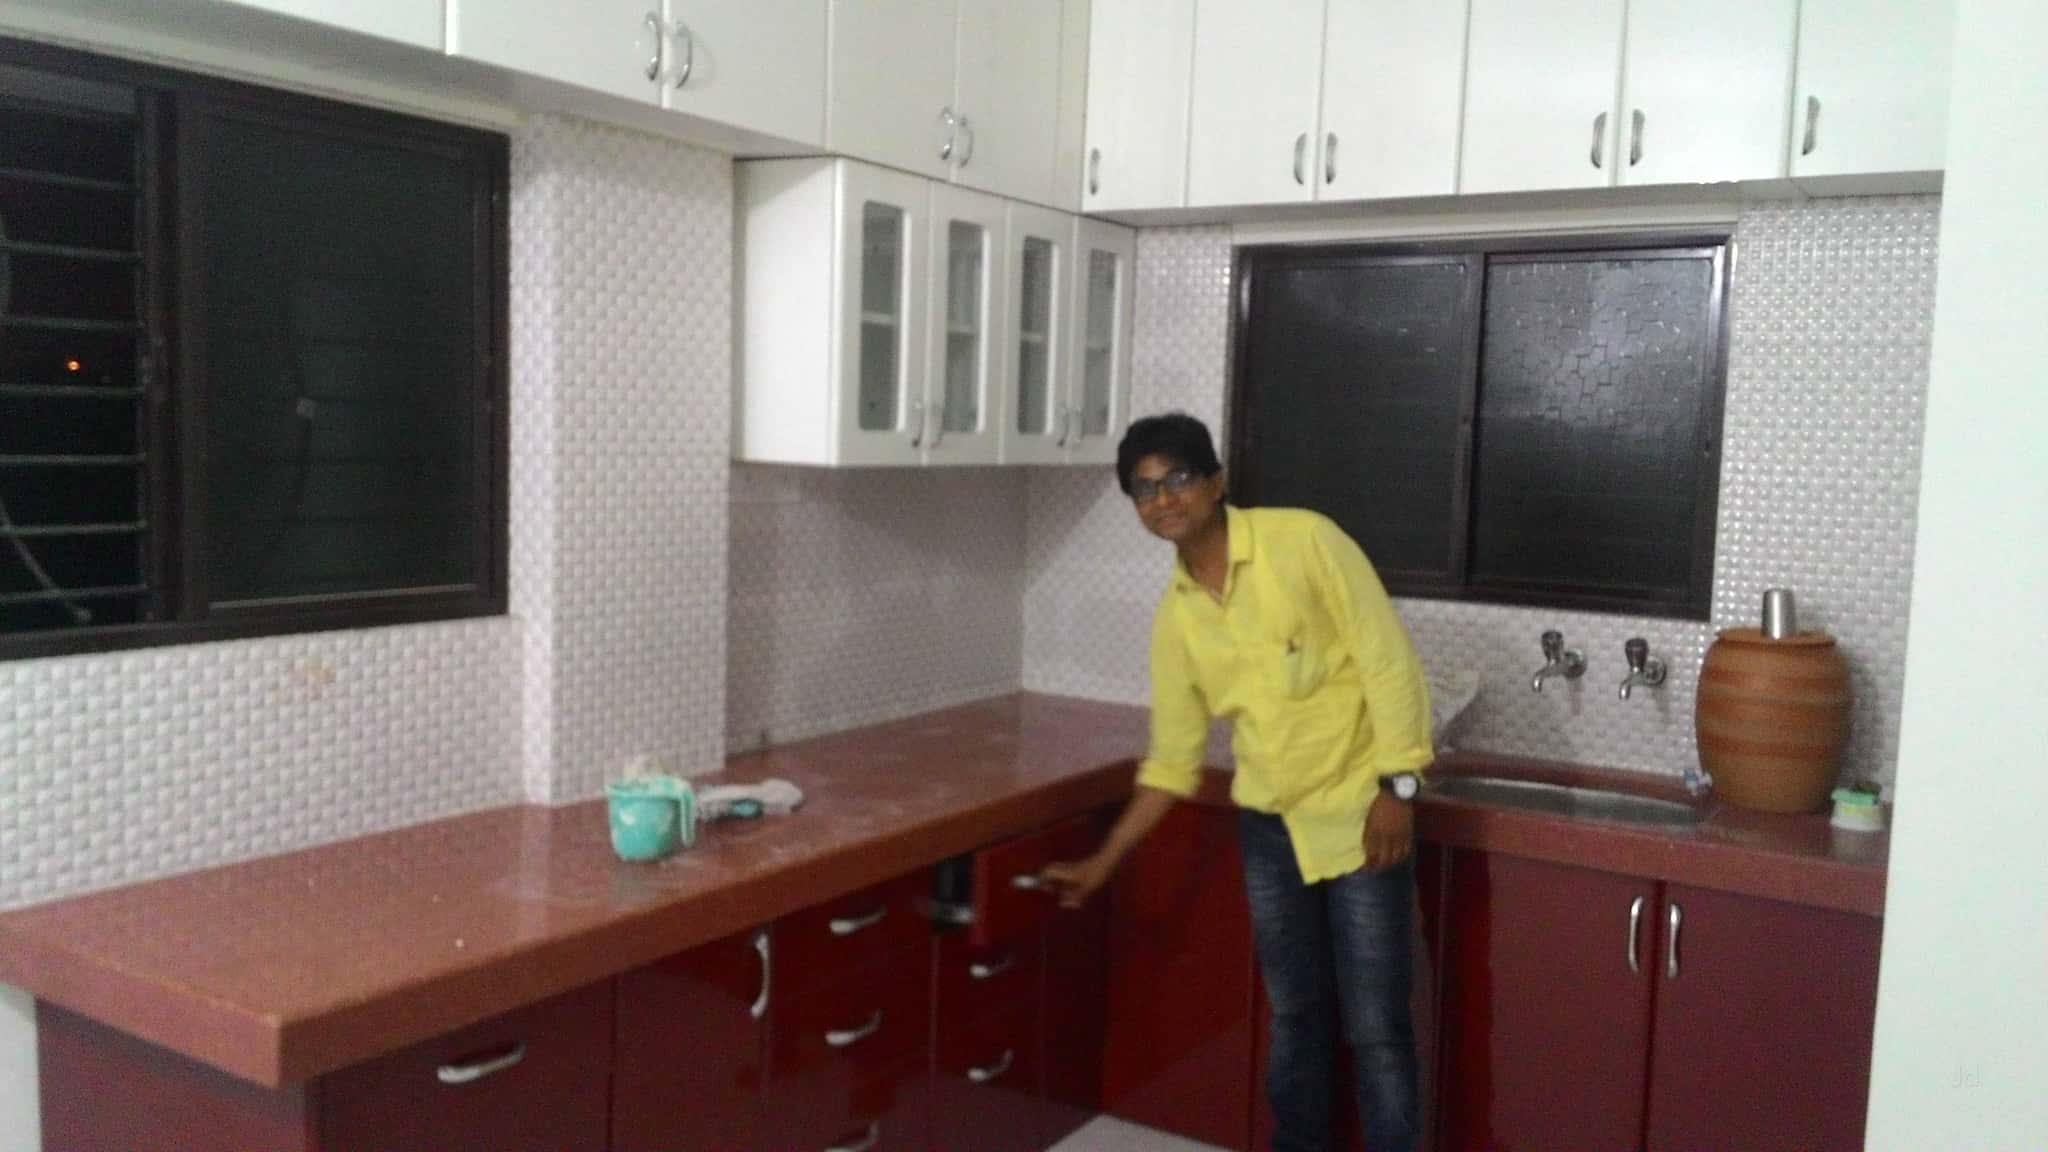 modular kitchens kitchen table stools rachana lashkaribag rachna dealers in nagpur justdial